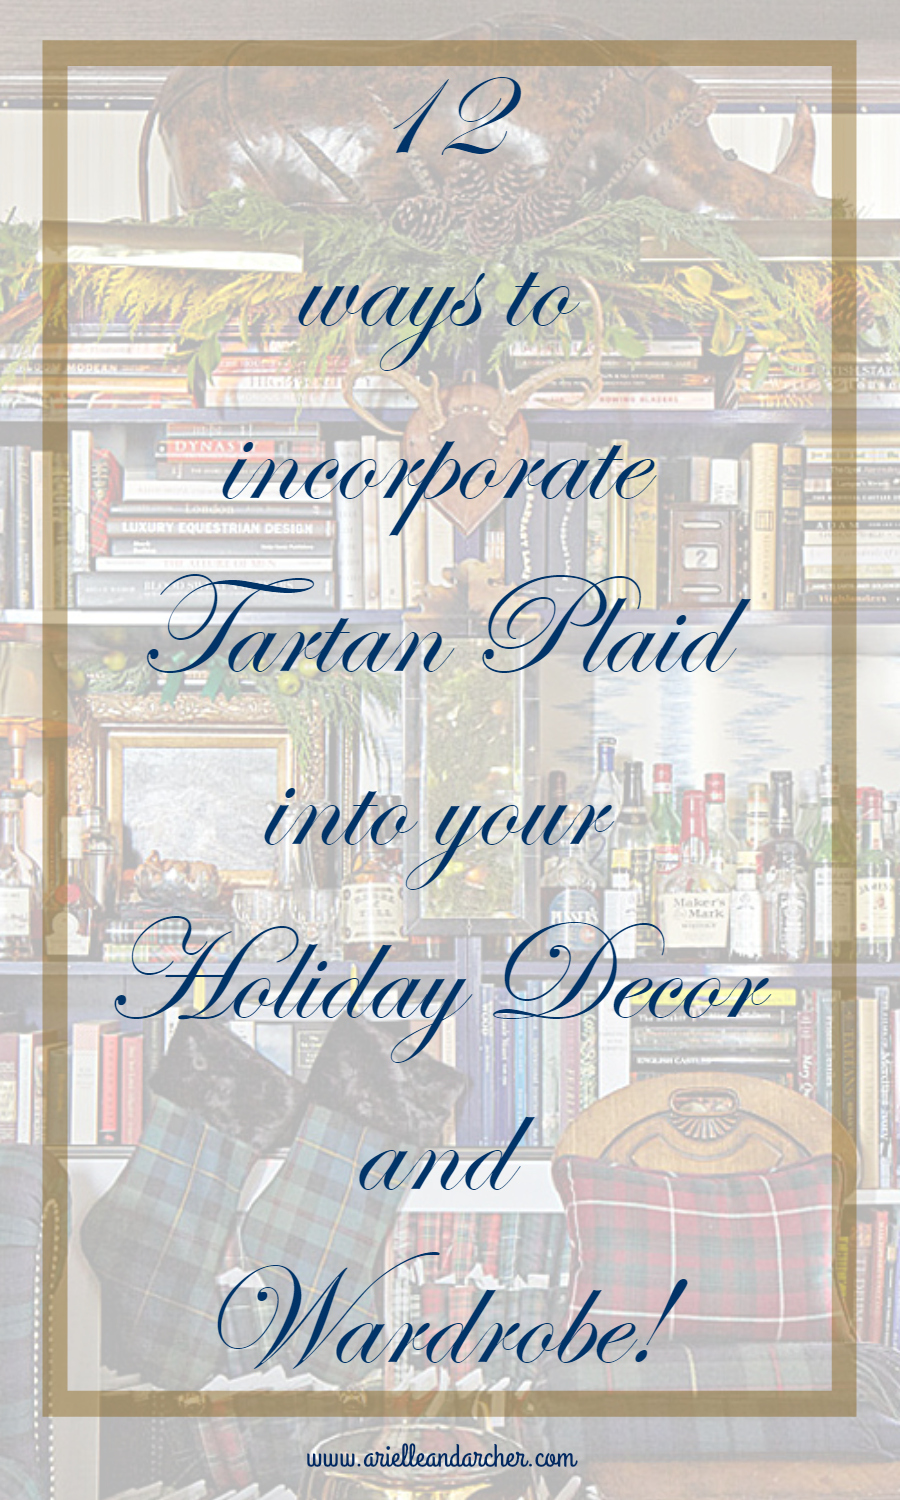 12 ways to incorporate Tartan Plaid into your Holiday Decor and Wardrobe